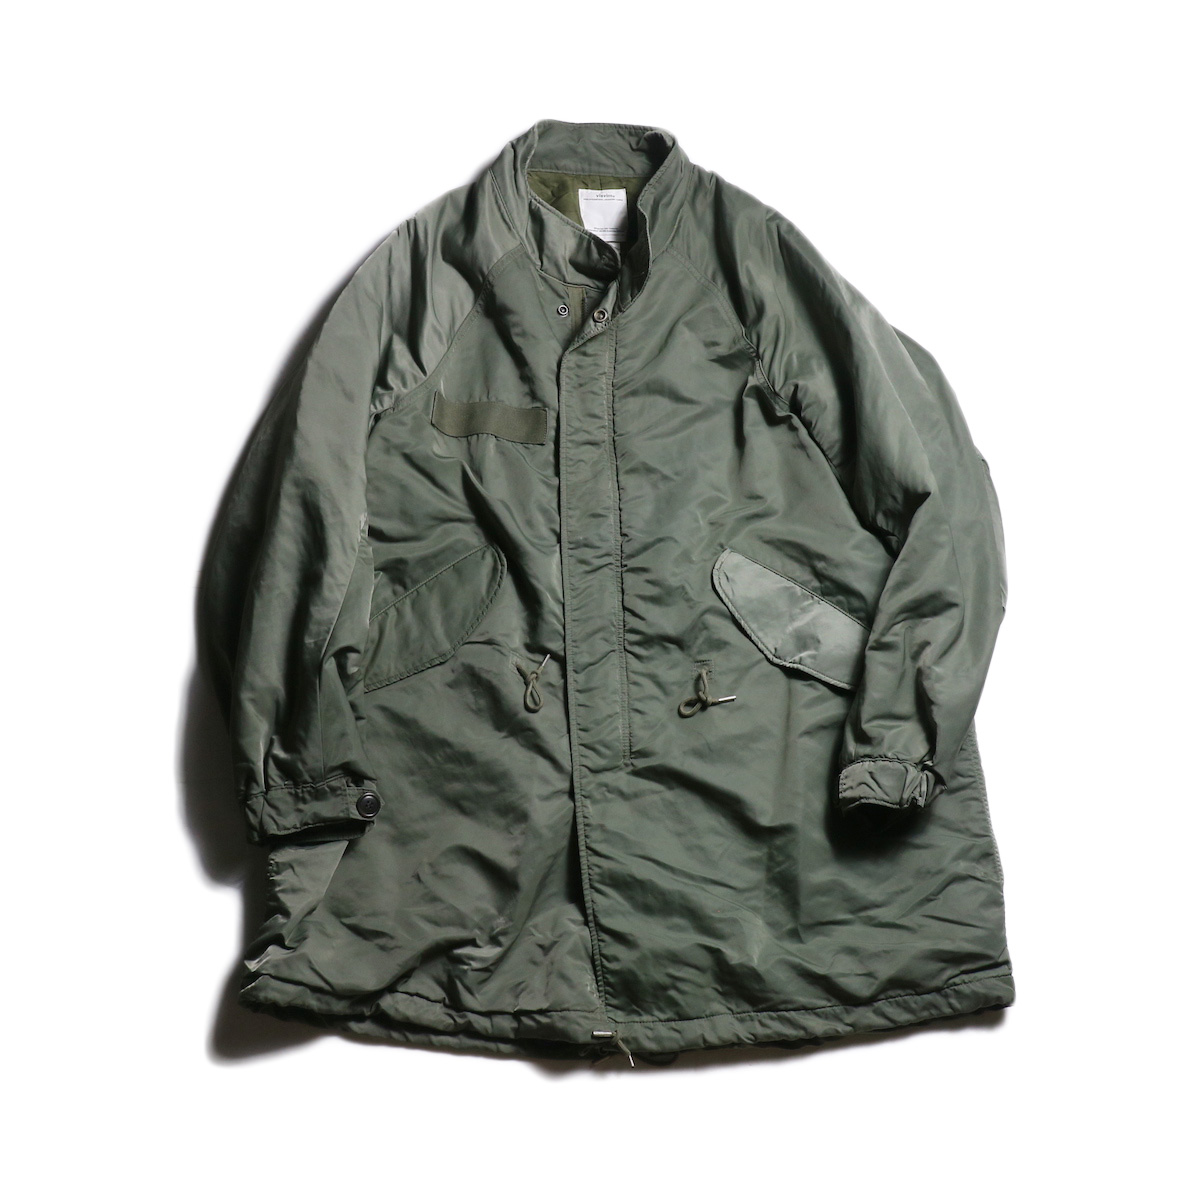 visvim / SIX-FIVE FISHTAIL PARKA (Olive)